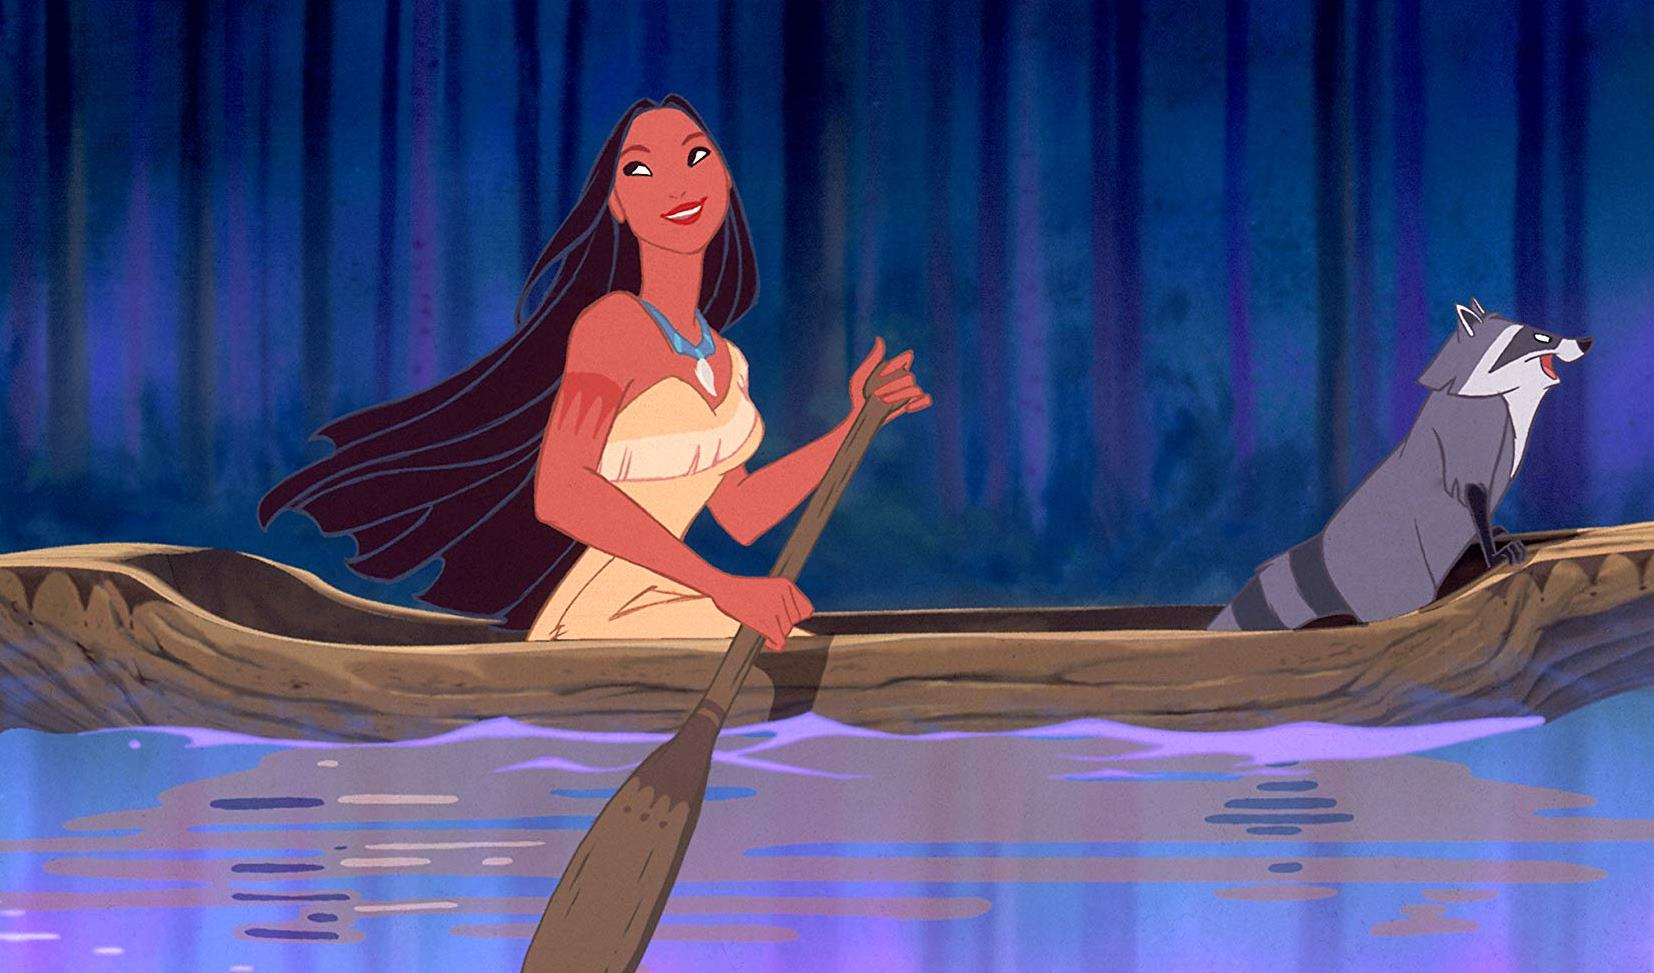 Pocahontas (voiced by Irene Bedard) and Meeko the racoon (voiced by John Kassir) in her canoe in Pocahontas (1995)